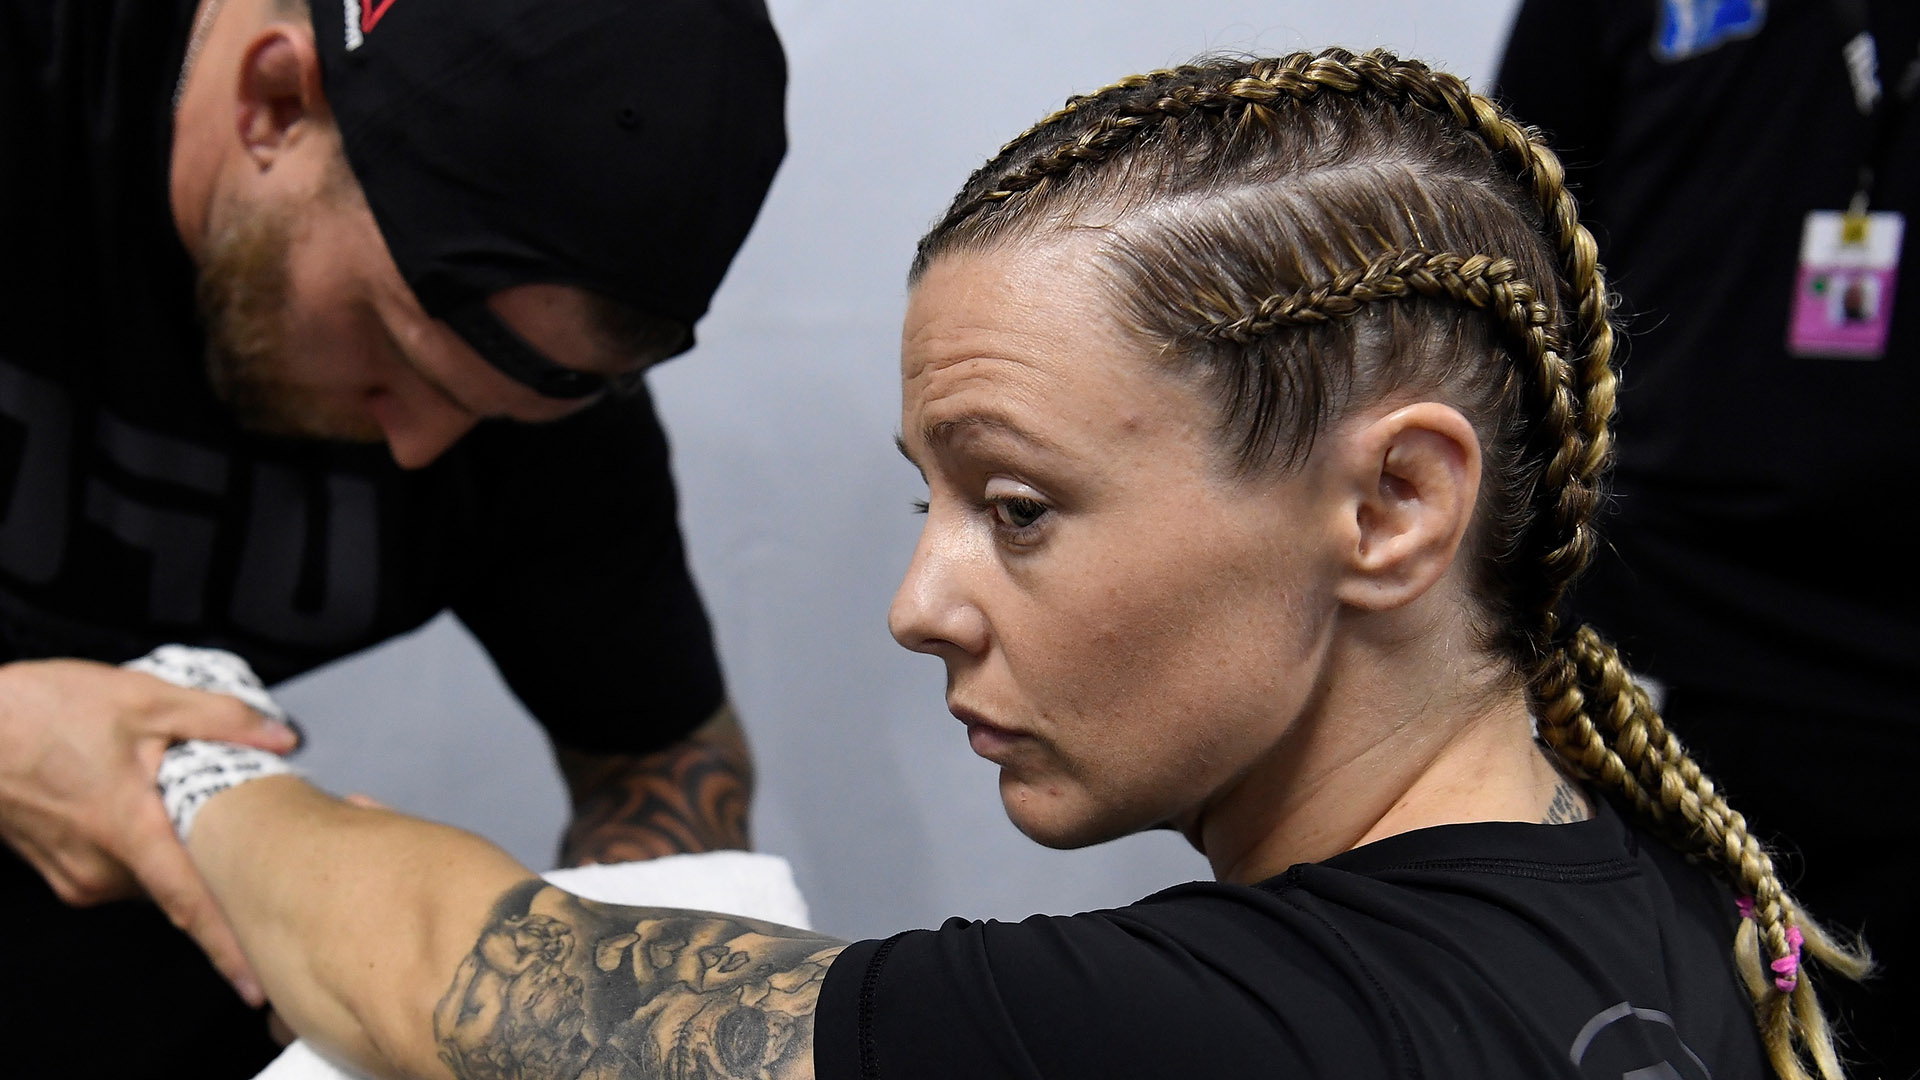 Joanne Calderwood of United Kingdom has her hands wrapped backstage during UFC 242 at The Arena on September 7, 2019 in Yas Island, Abu Dhabi, United Arab Emirates. (Photo by Mike Roach/Zuffa LLC)